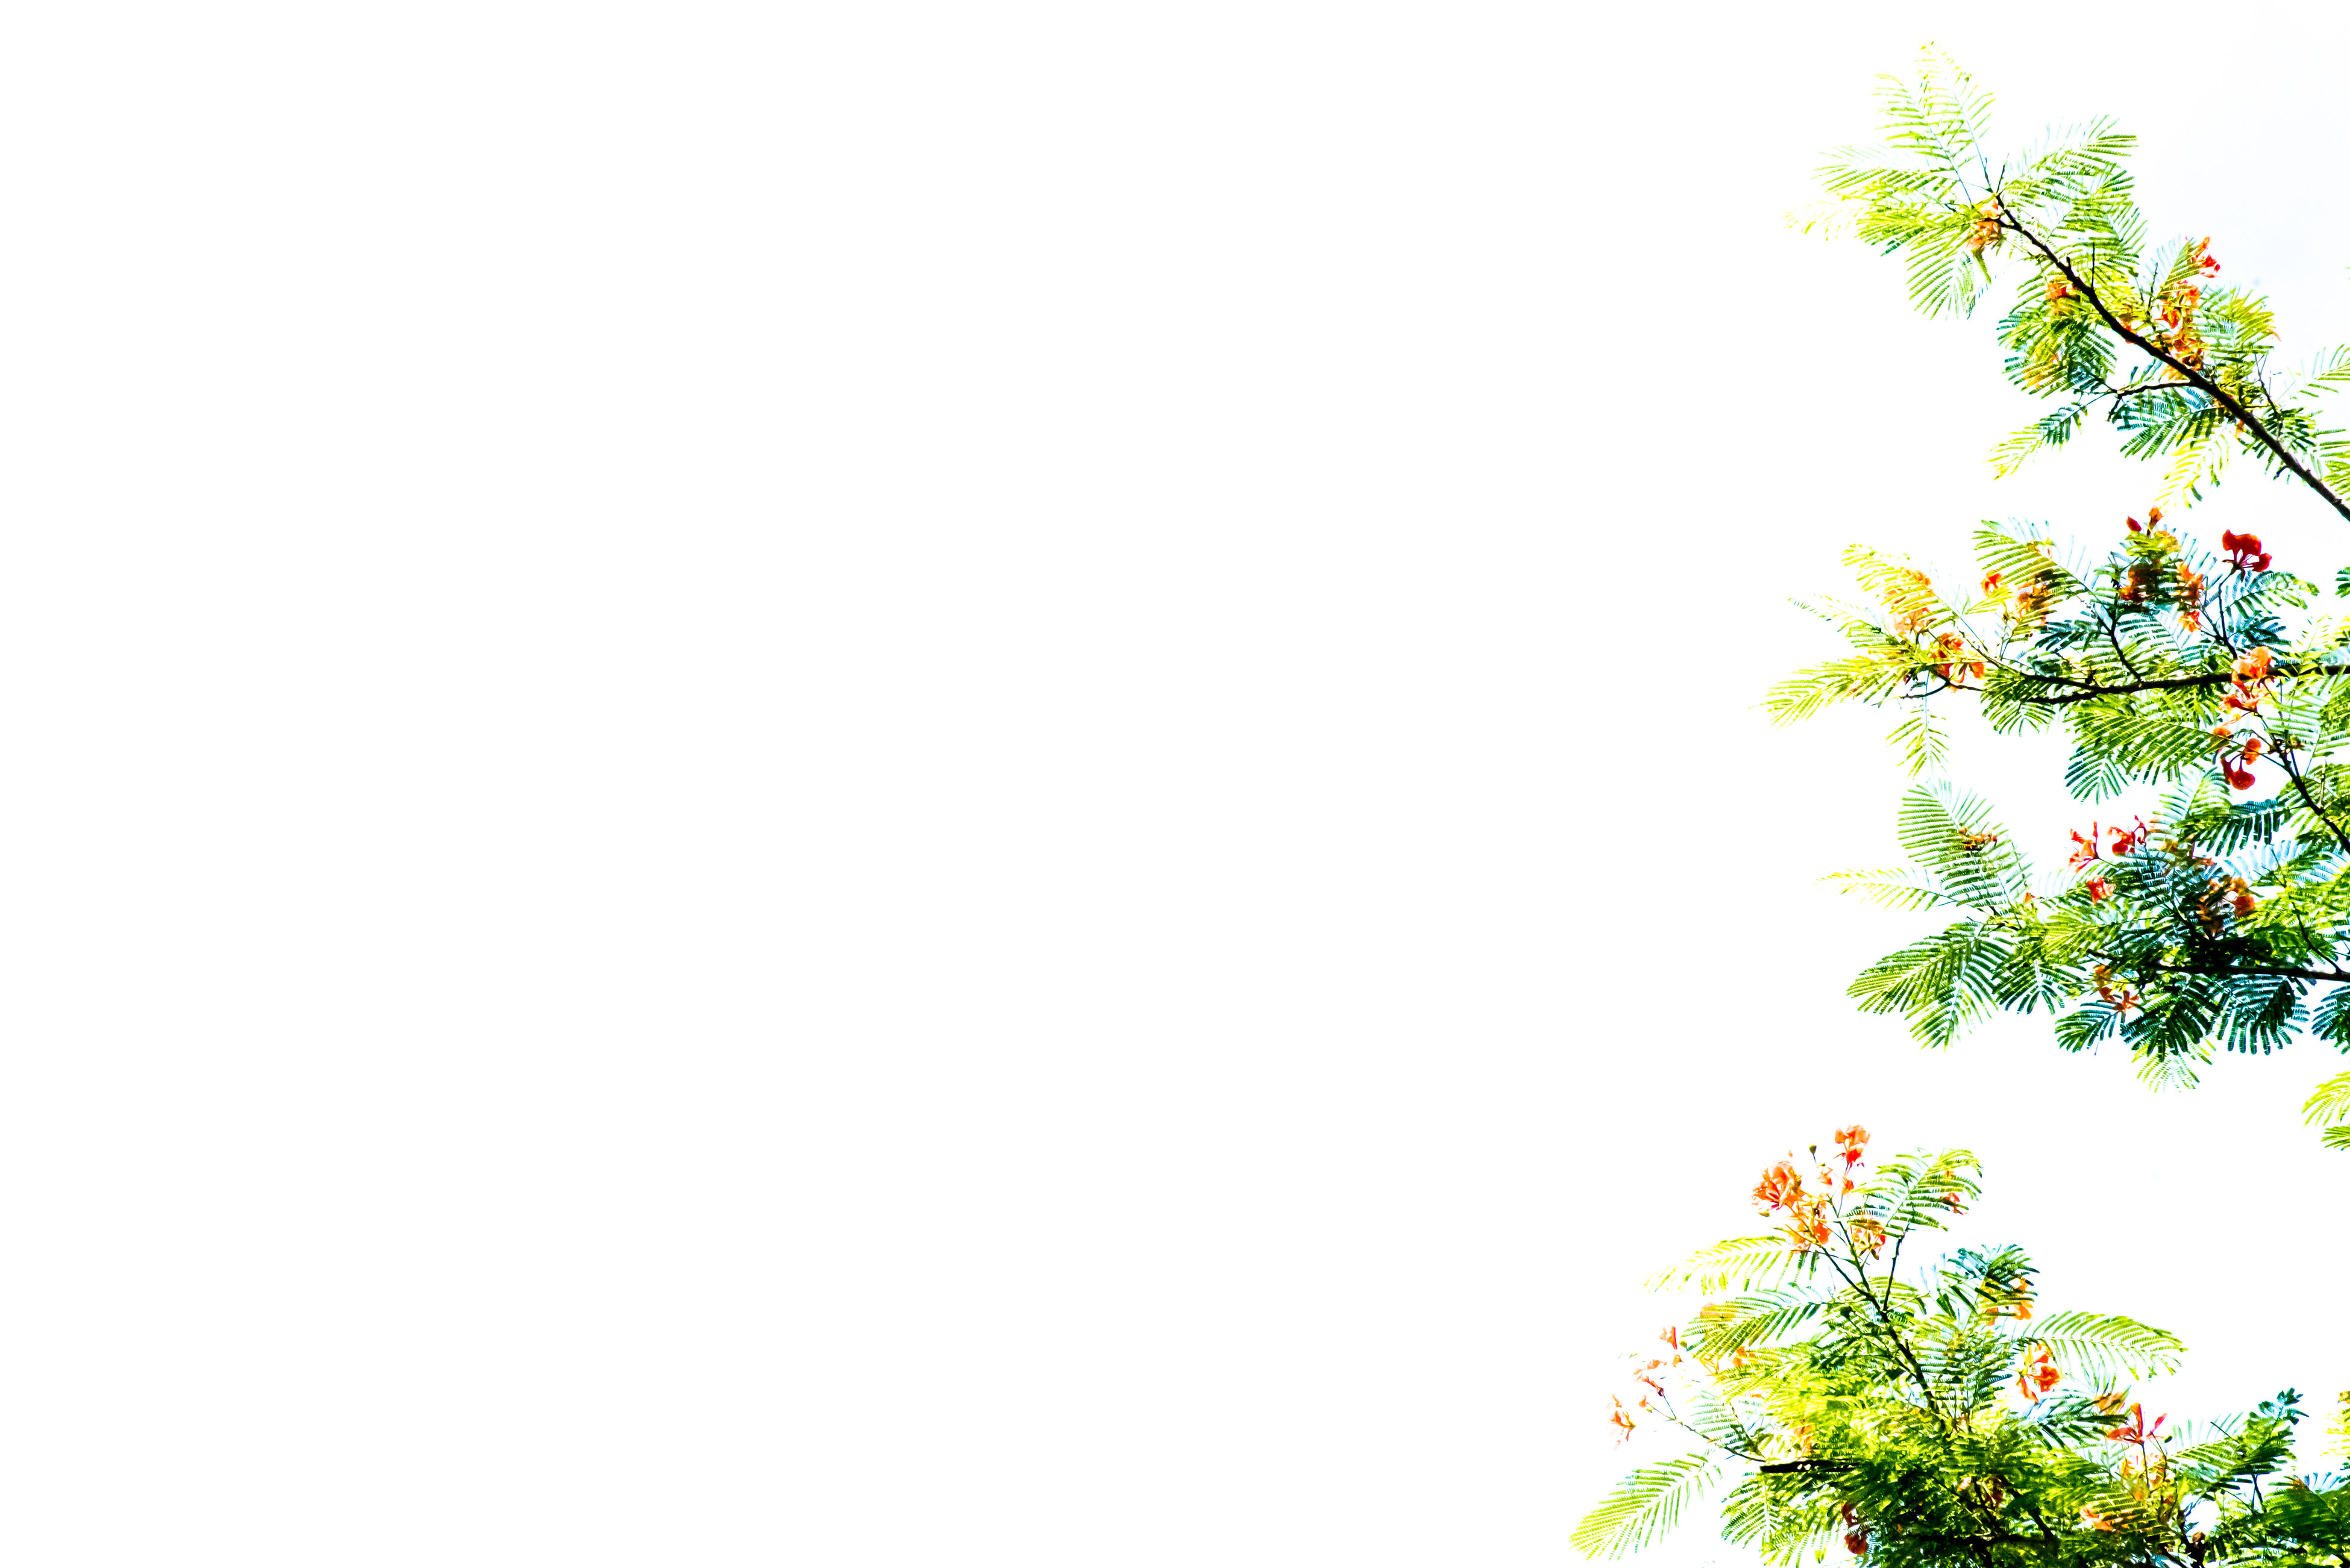 growth, copy space, tree, flower, nature, plant, clear sky, white background, leaf, branch, no people, beauty in nature, freshness, outdoors, day